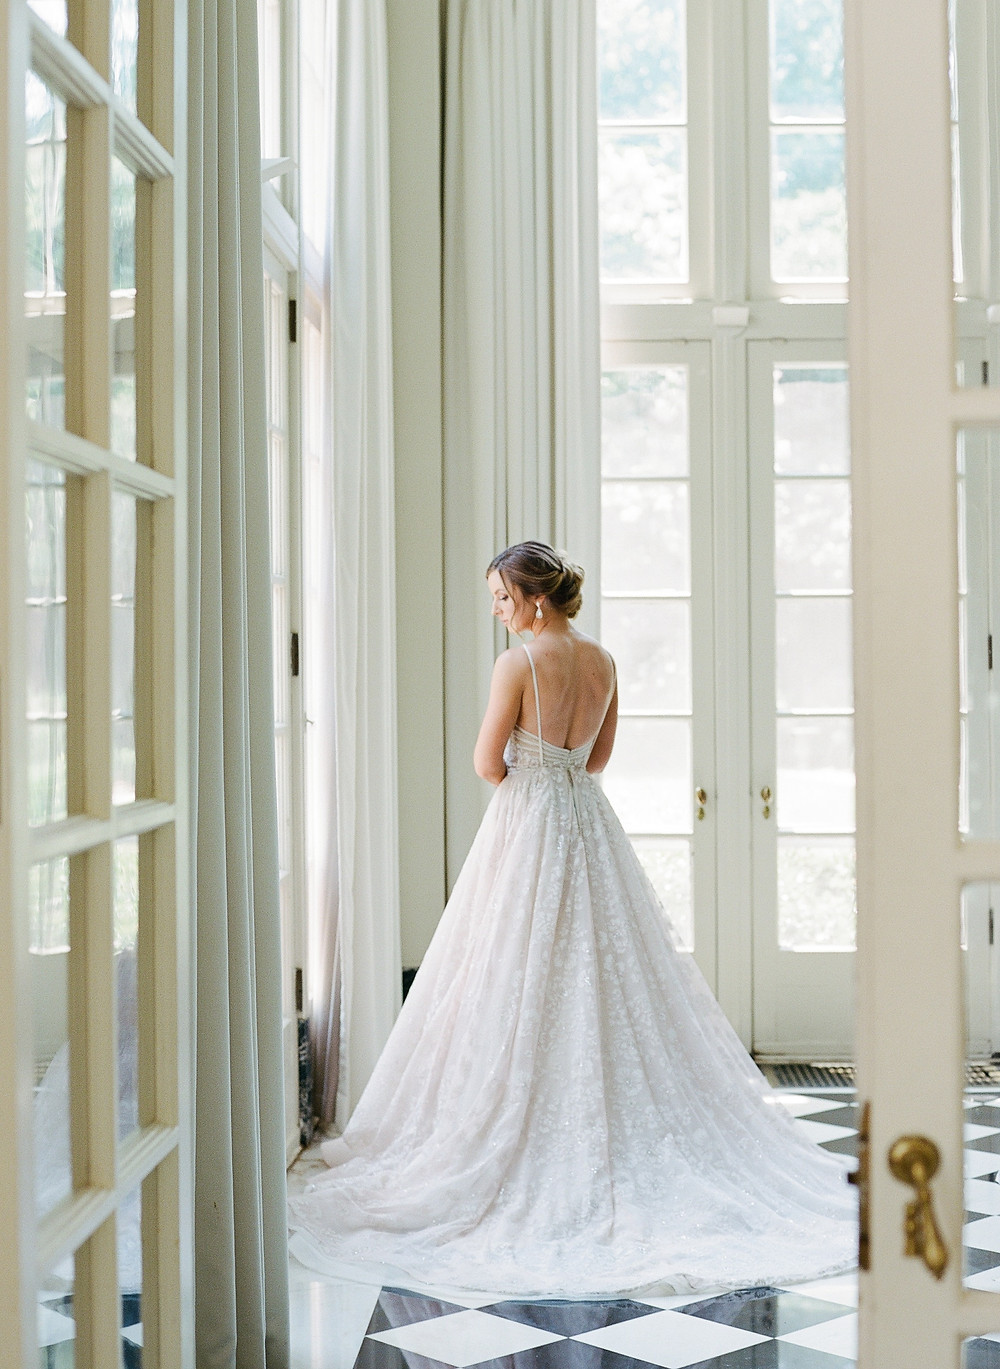 SoHo Event Design wedding planner Duke Mansion wedding couture bridal gown north carolina wedding planner